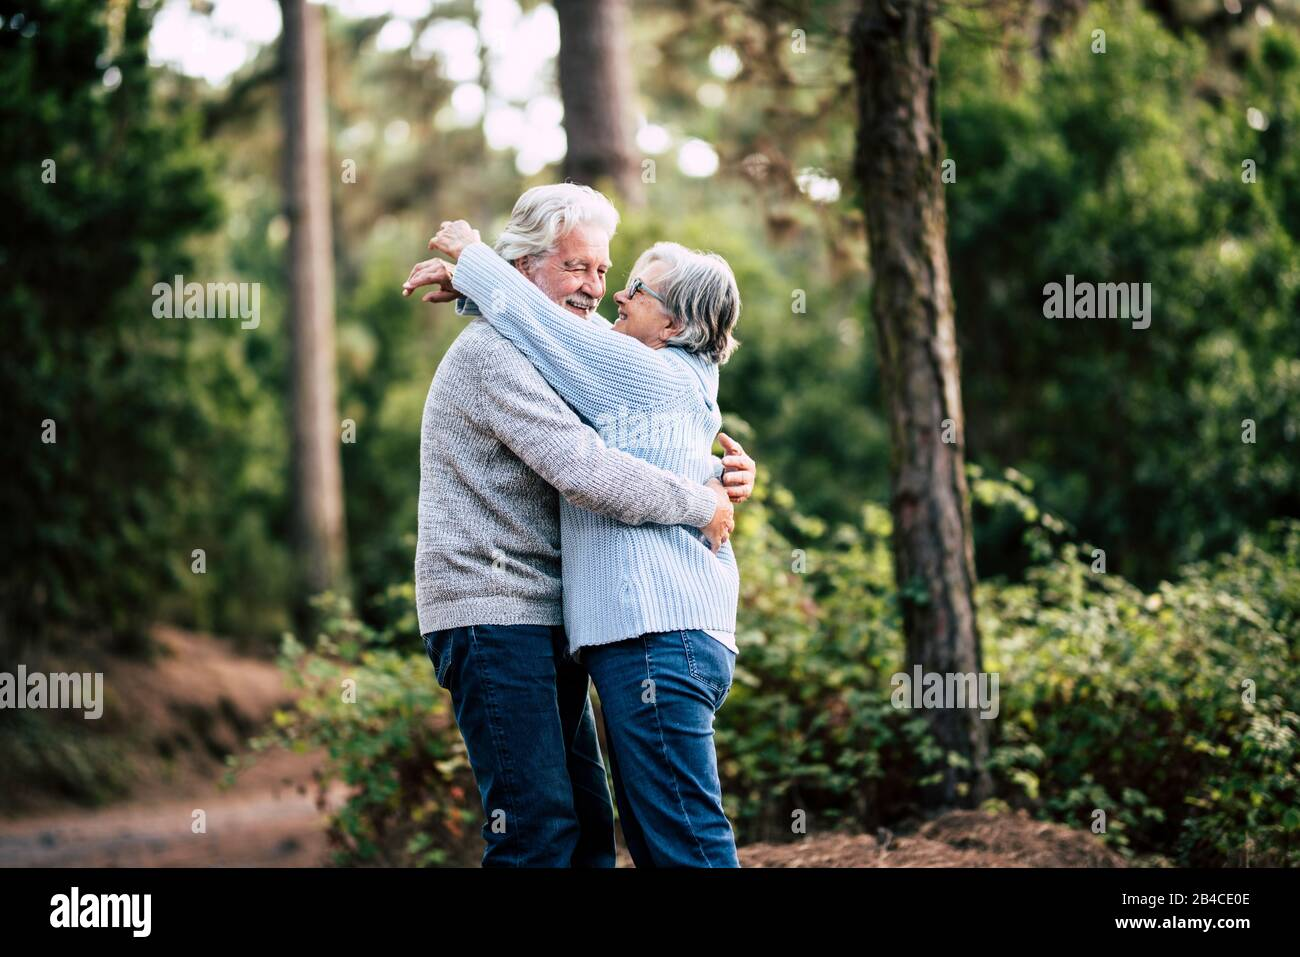 Senior active couple enjoying the outdoor nature forest with hugs and love together - forever life concept with mature man and woman - elderly and beautiful forest green in background Stock Photo